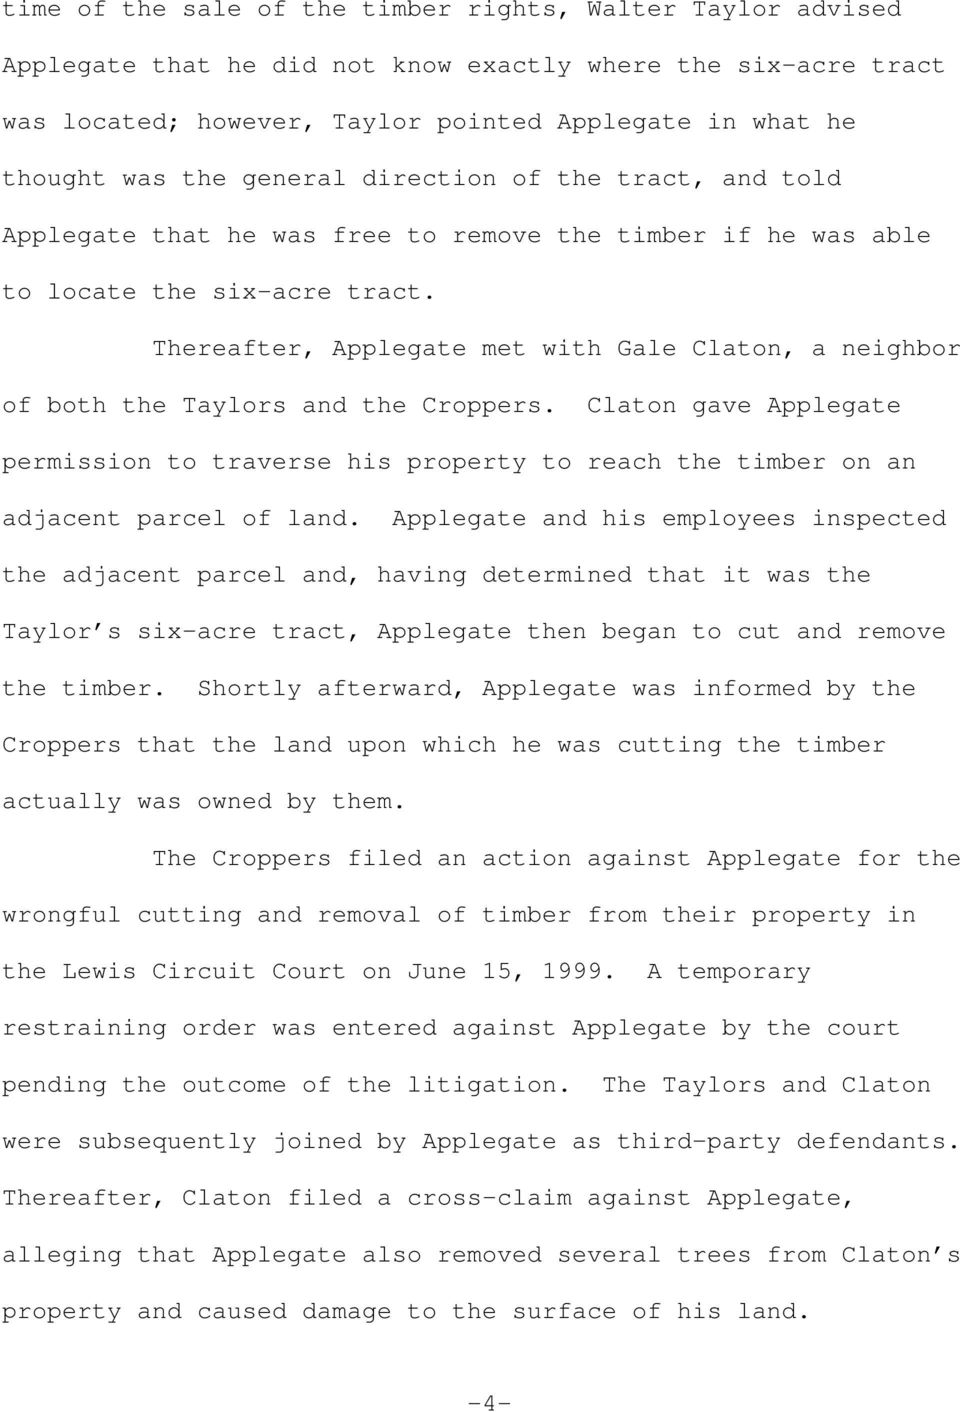 Thereafter, Applegate met with Gale Claton, a neighbor of both the Taylors and the Croppers.